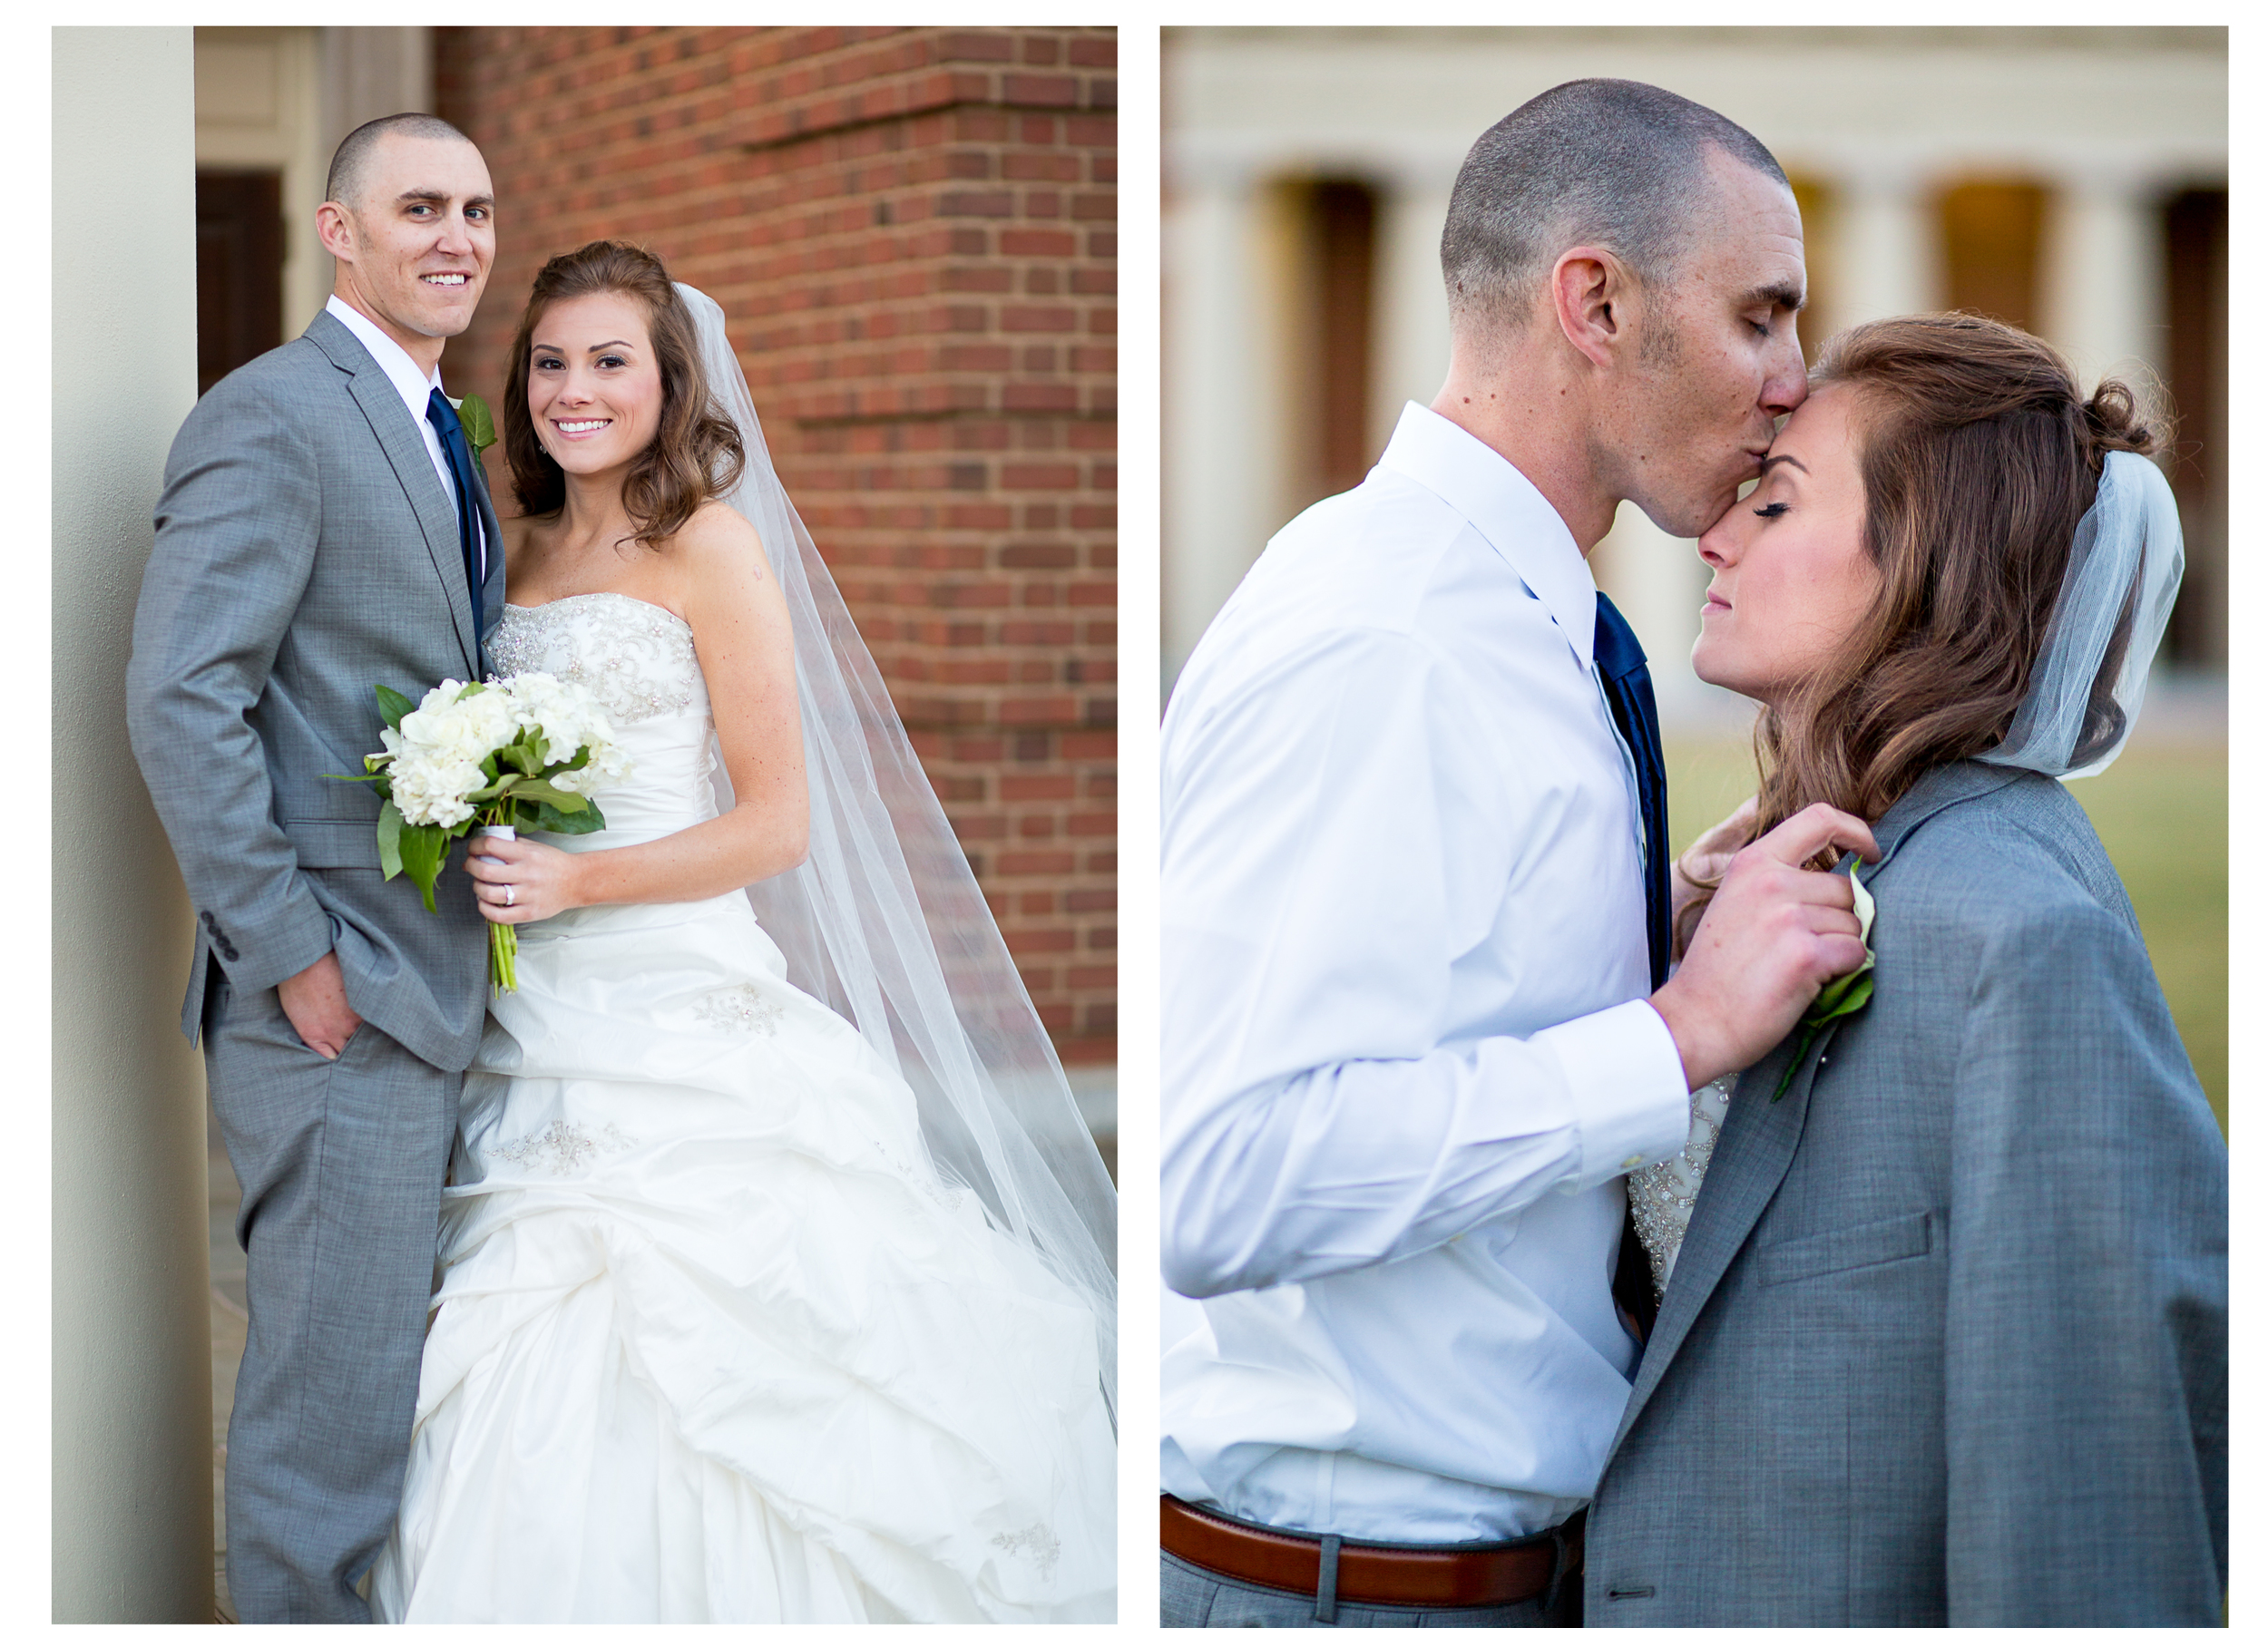 Michigan Kansas City and Phoenix Wedding photographer Erin Evangeline Photography at Wake Forest